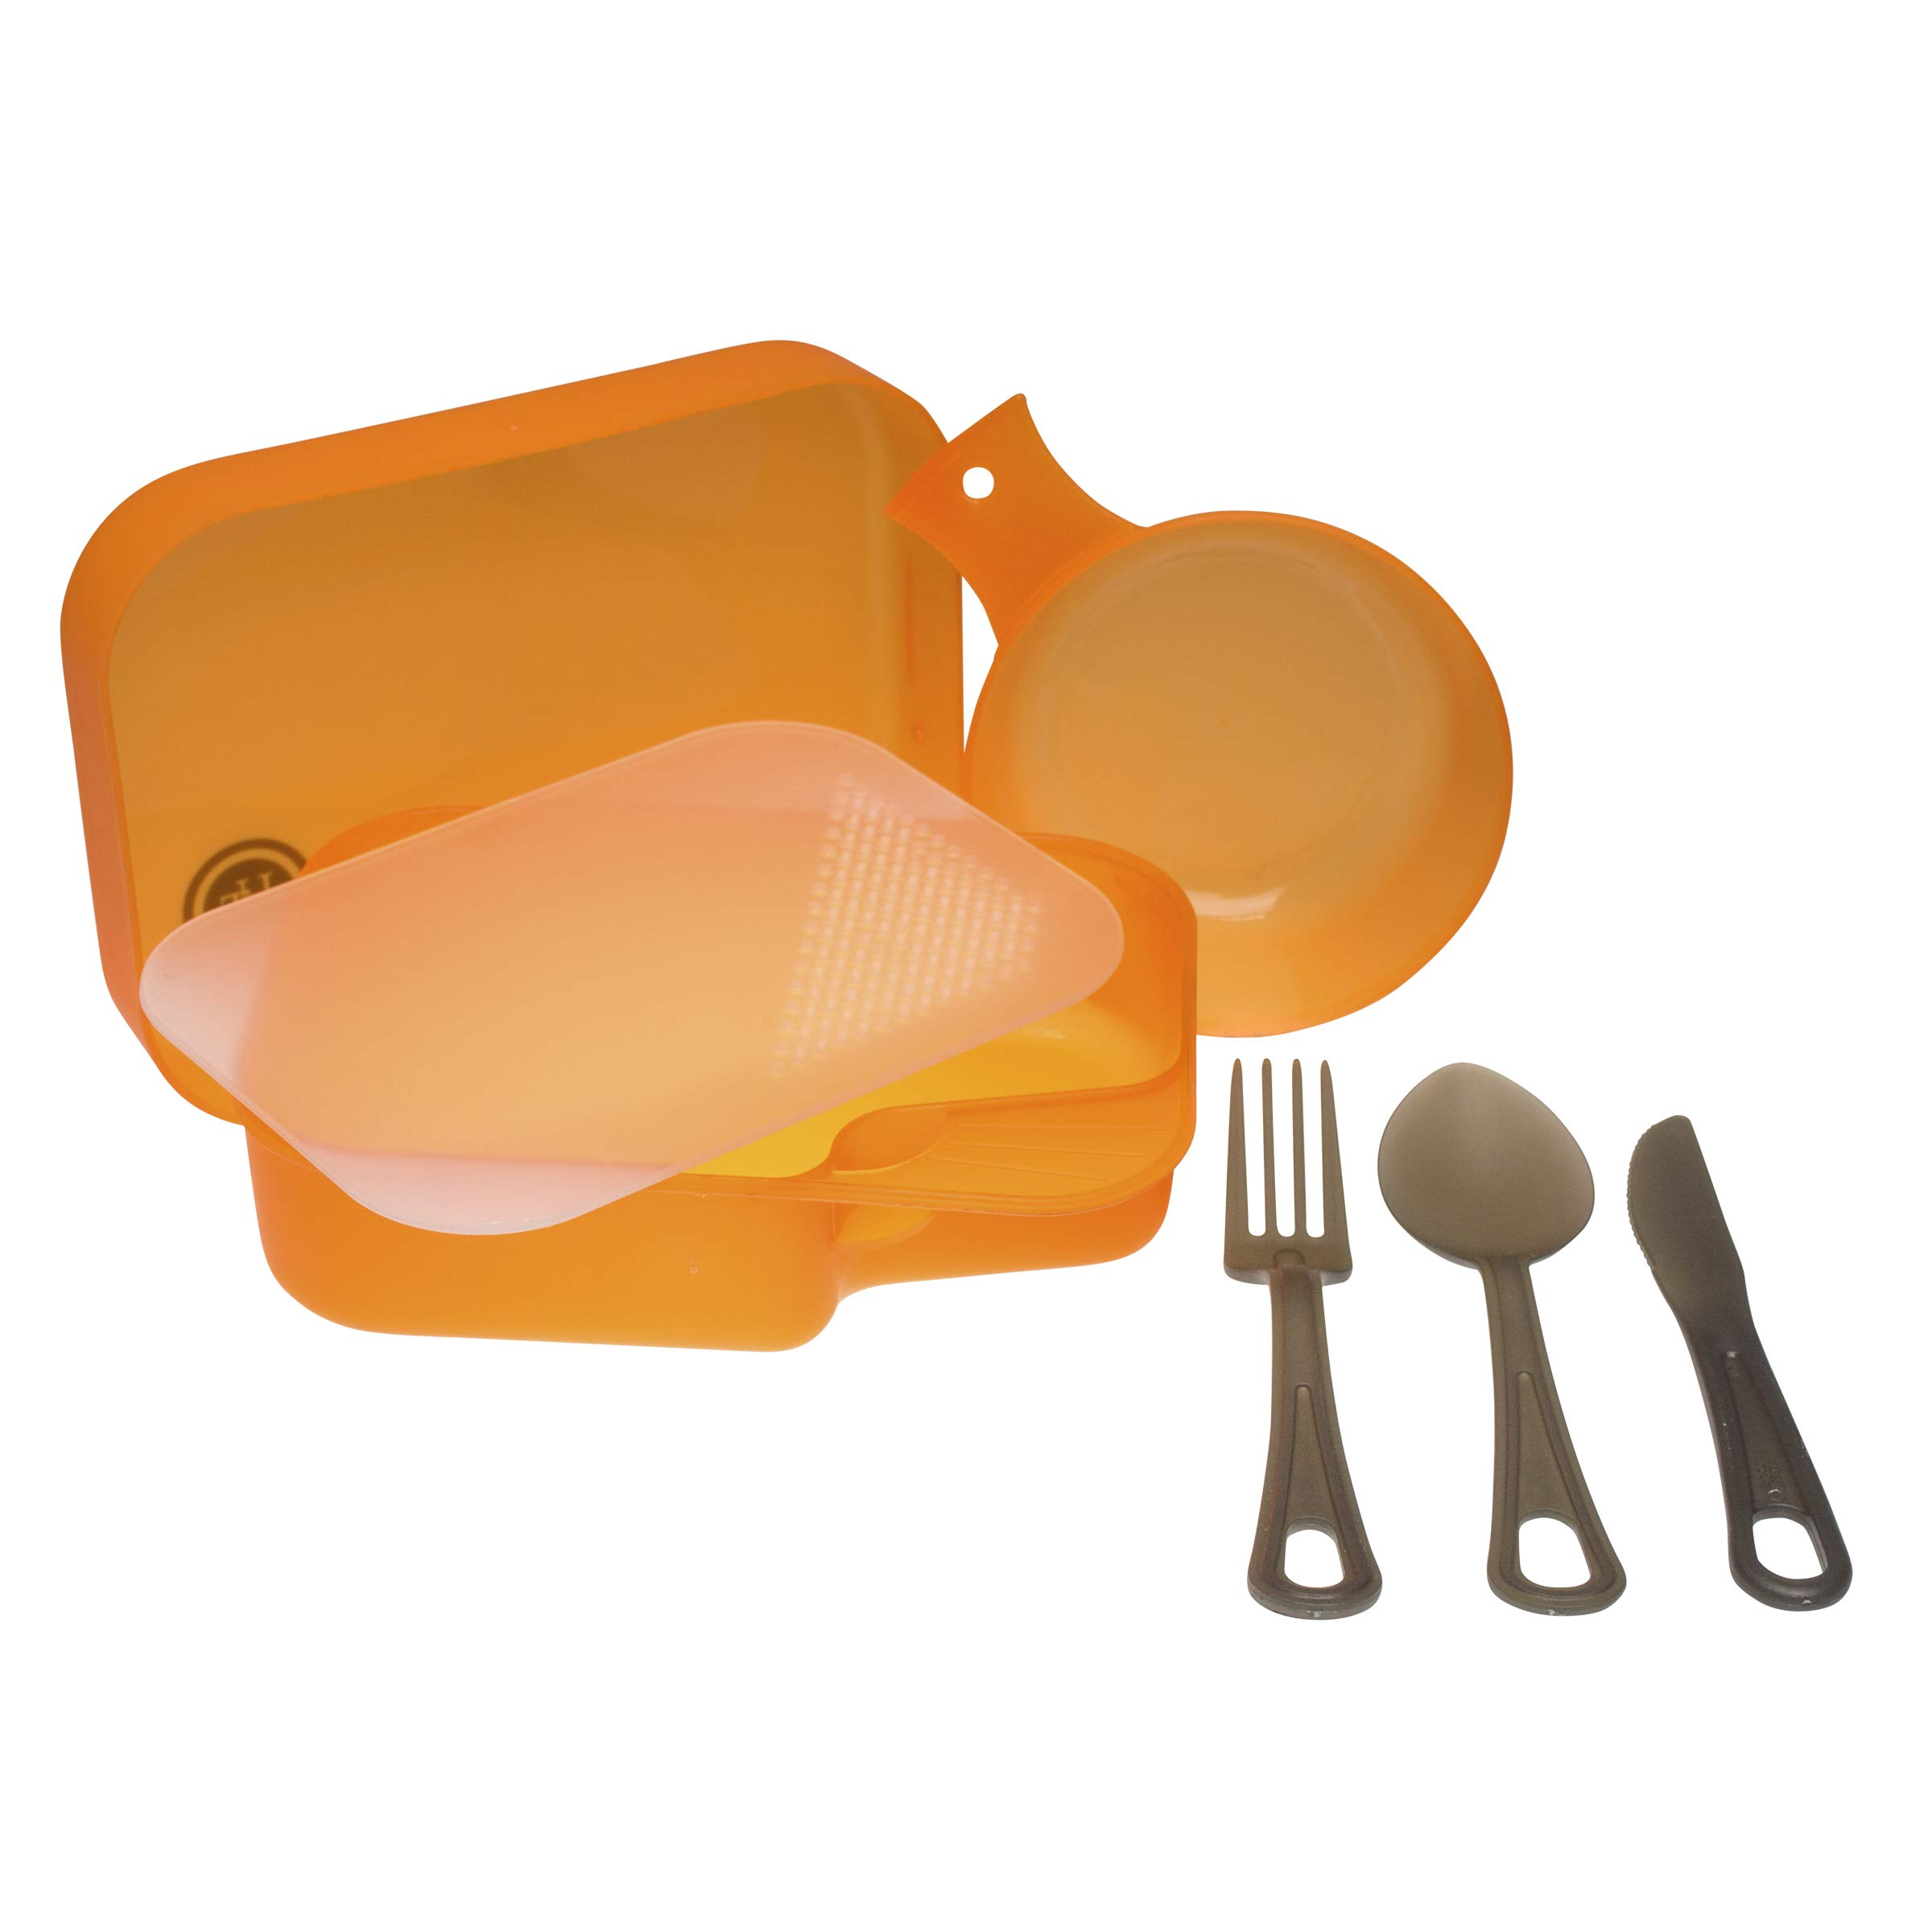 UST PackWare Mess Kit with Self Contained, BPA Free Construction and Eating Utensils for Hiking, Camping, Backpacking, Travel and Outdoor Survival by UST